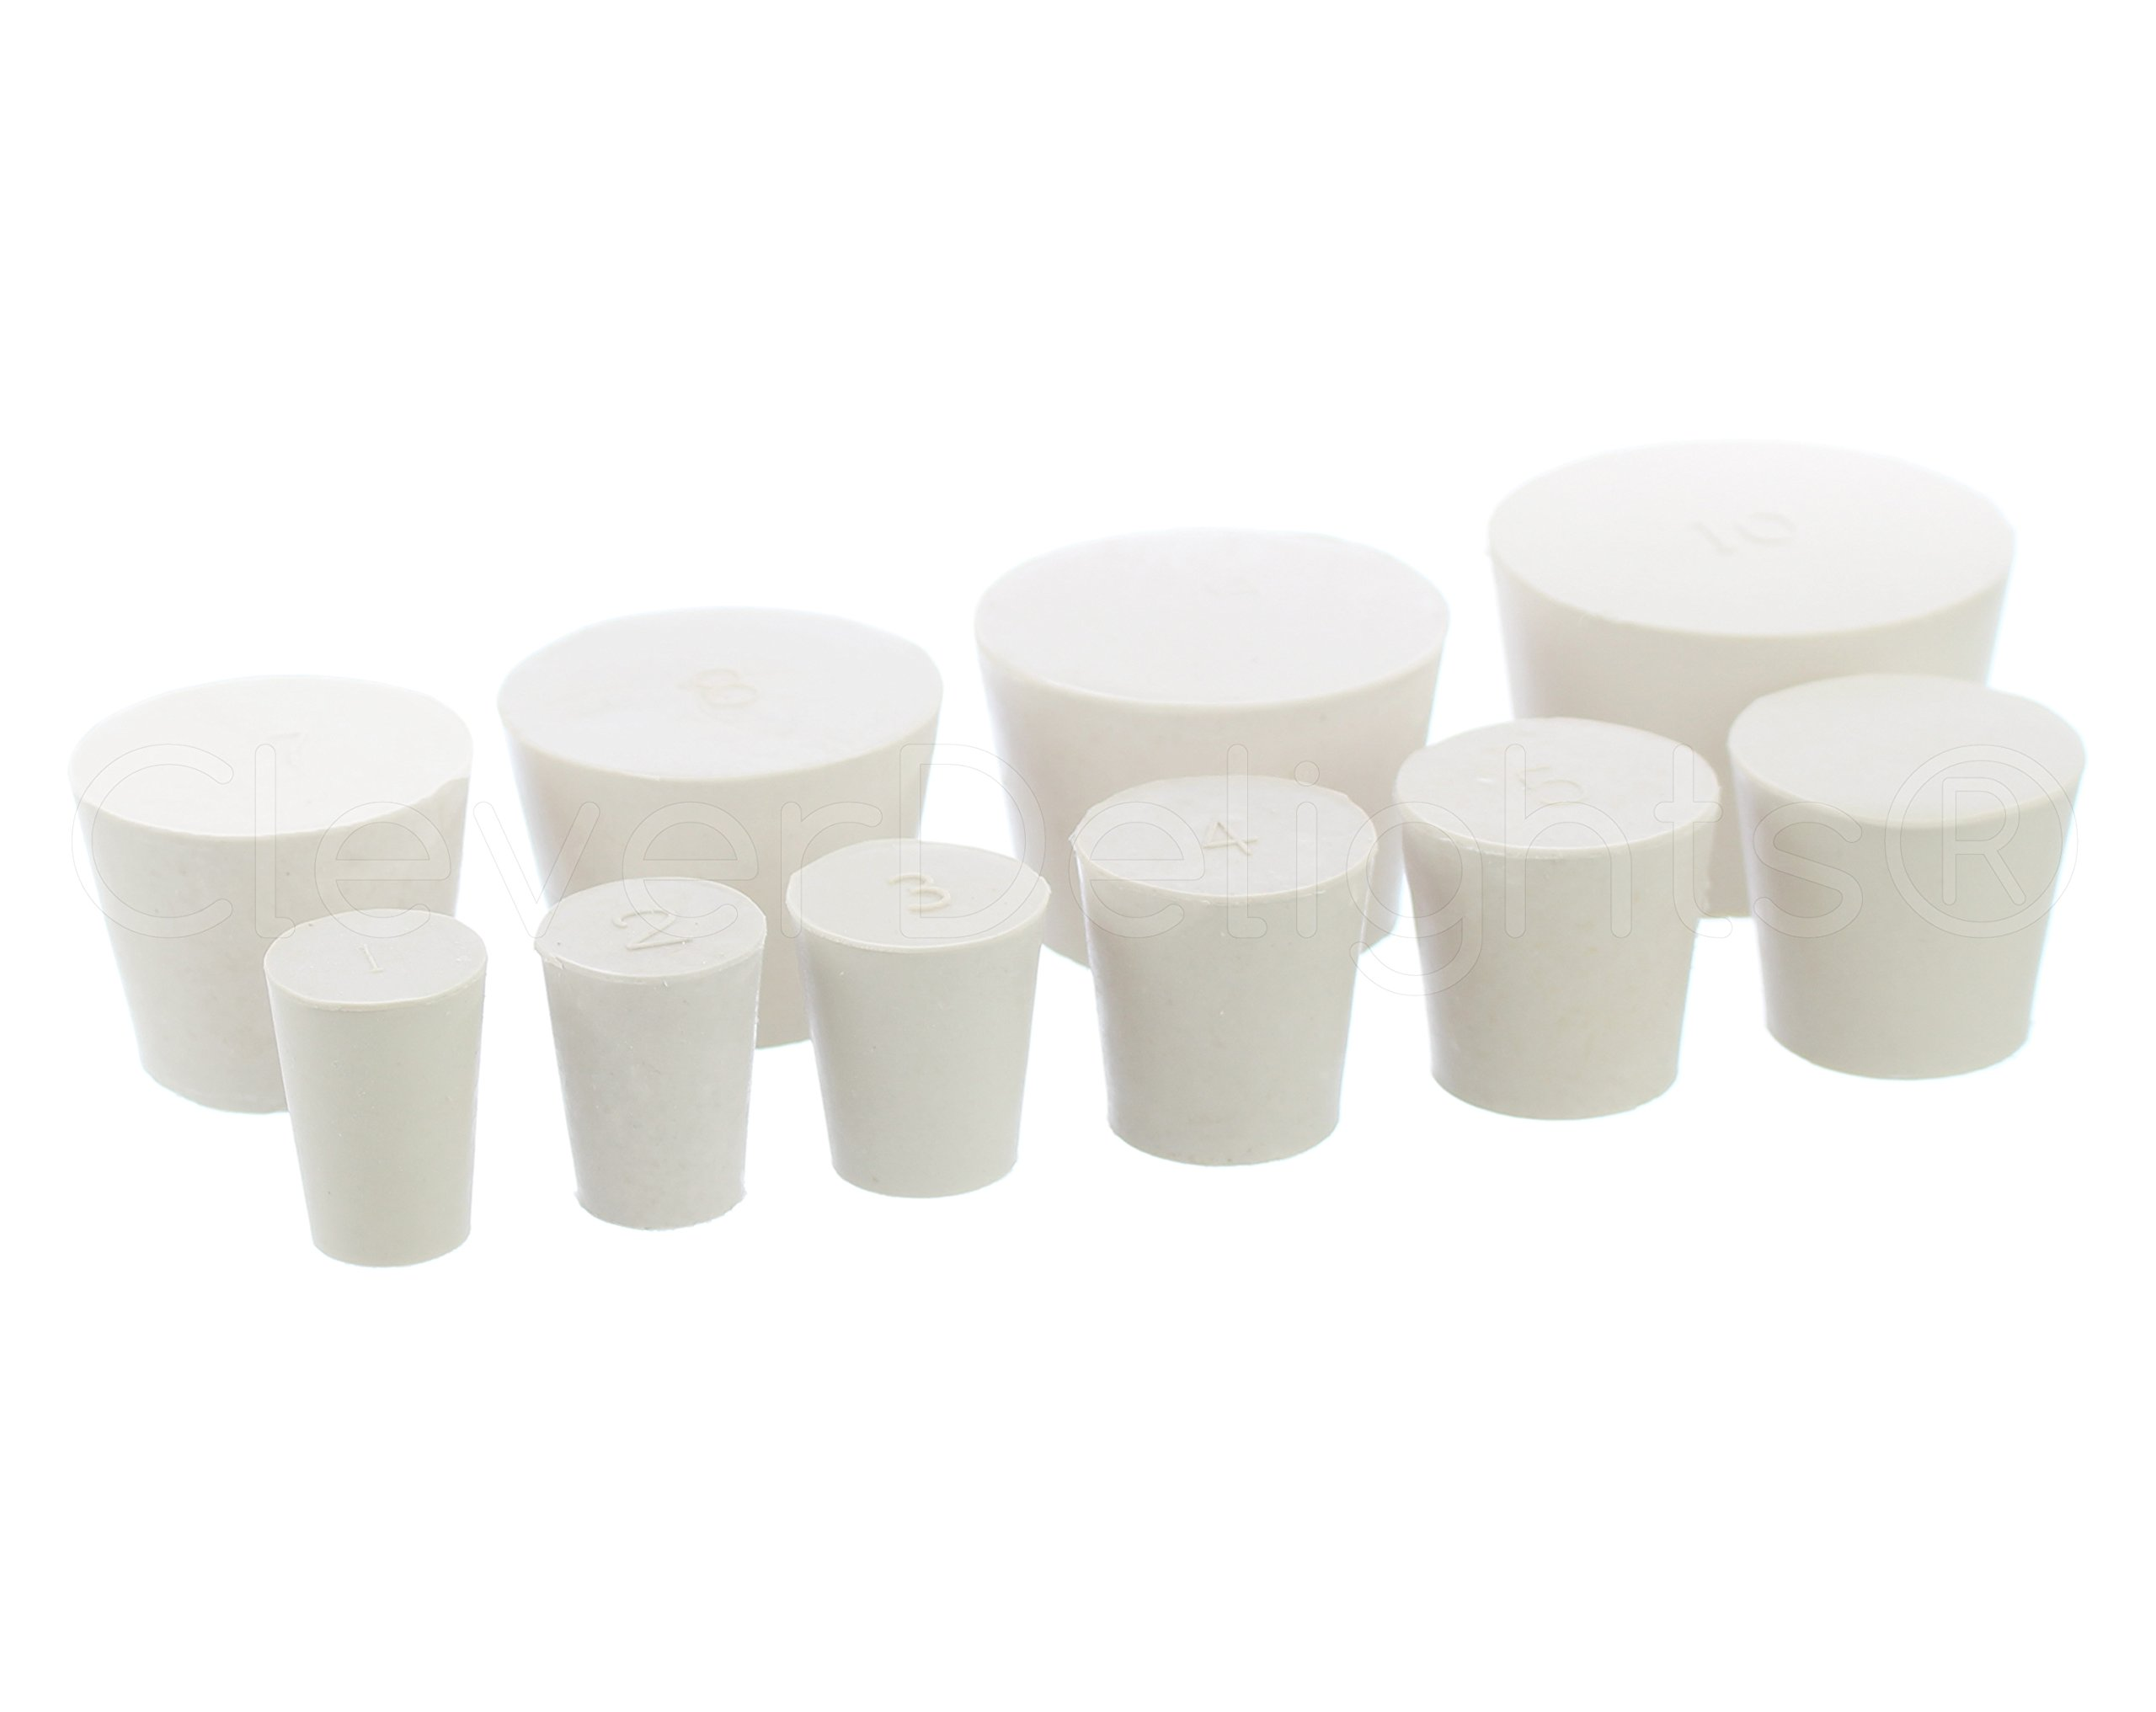 10 Pack - CleverDelights Solid Rubber Stoppers - Mix Pack - Sizes 1 to 10-1 Each Per Size by CleverDelights